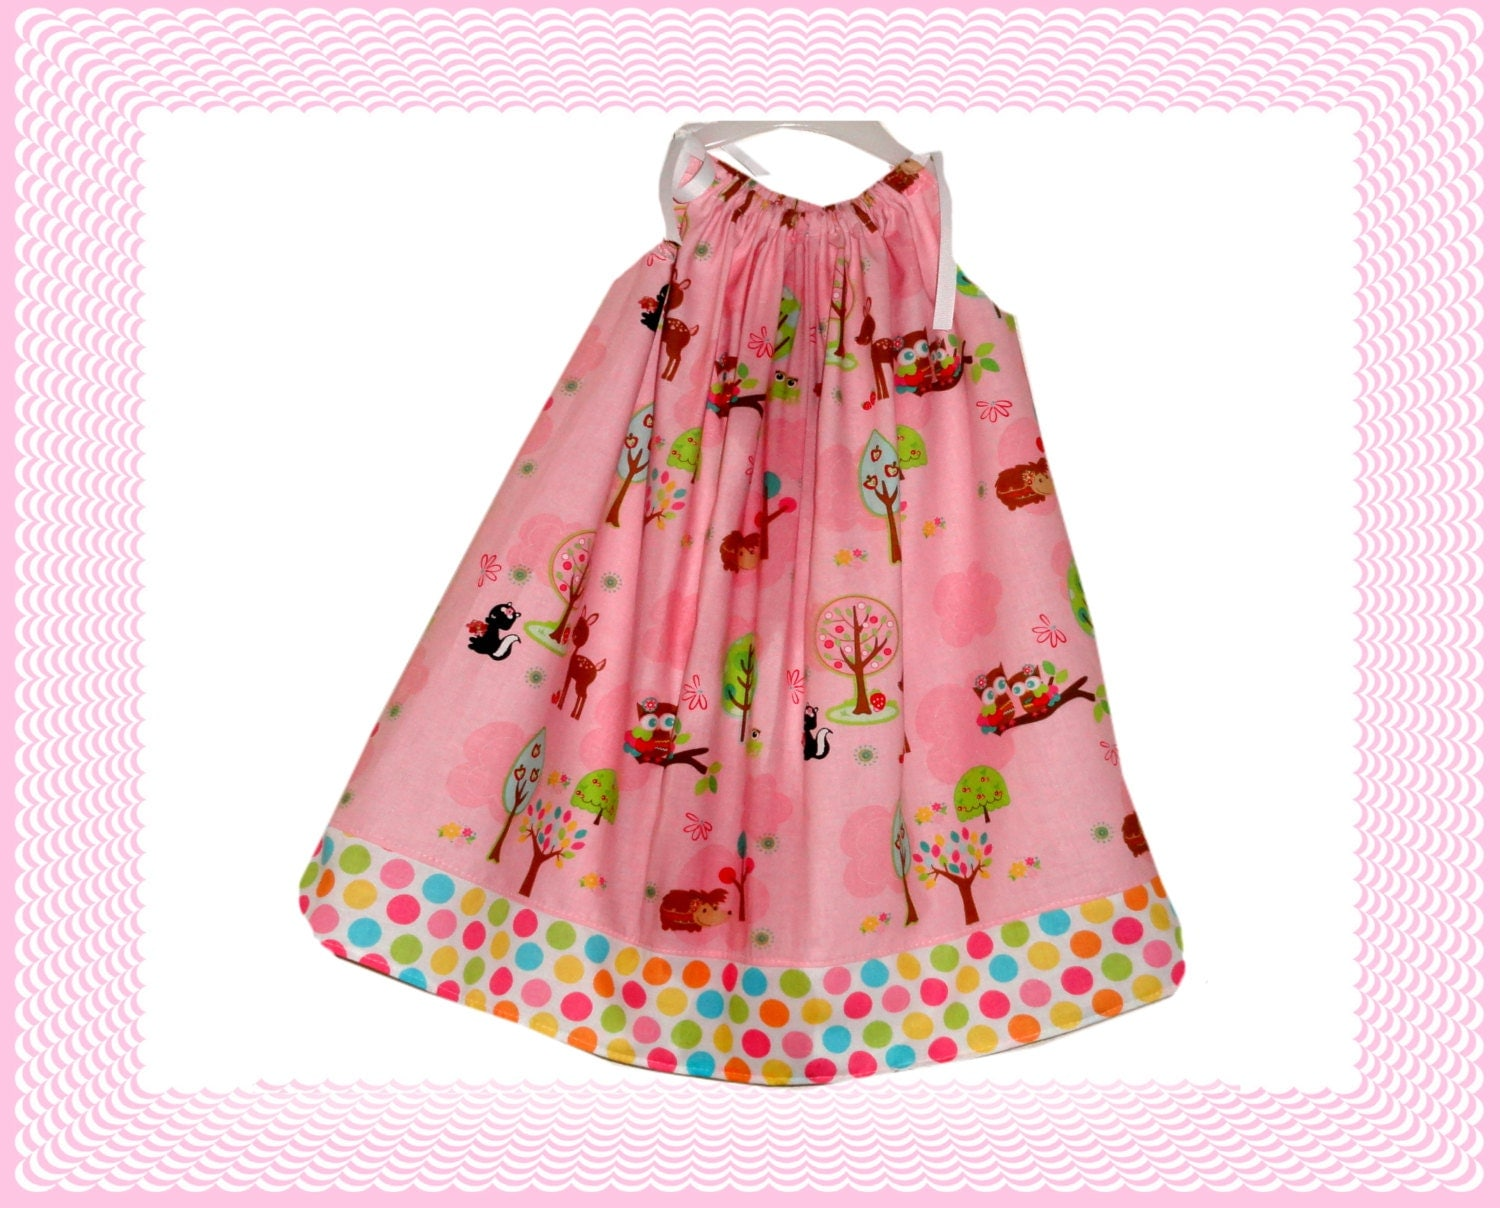 Toddler Girls Easter Egg Tree Dress Light Pink Pillowcase Dress - Amievoltaire